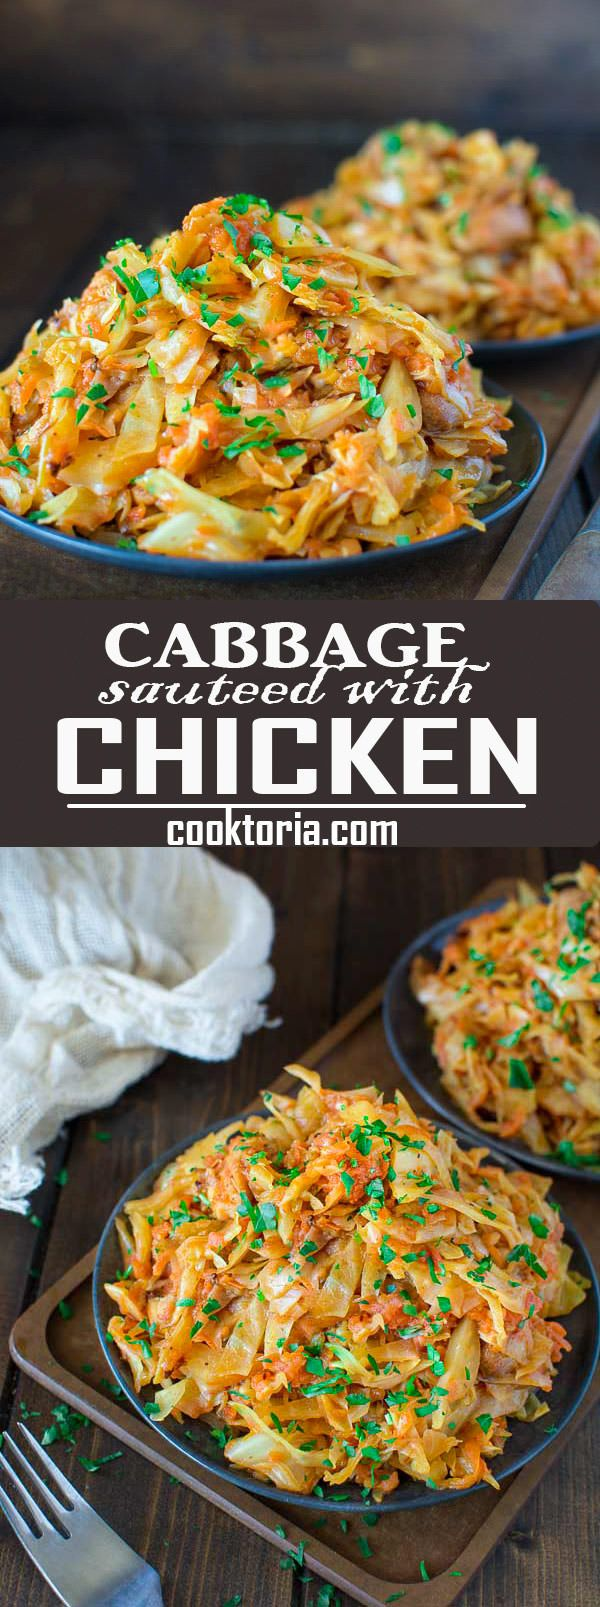 Succulent cabbage sauteed with tender chicken and vegetables. All you need is just a few ingredients and about 15 minutes of time to make this delicious dinner ready.